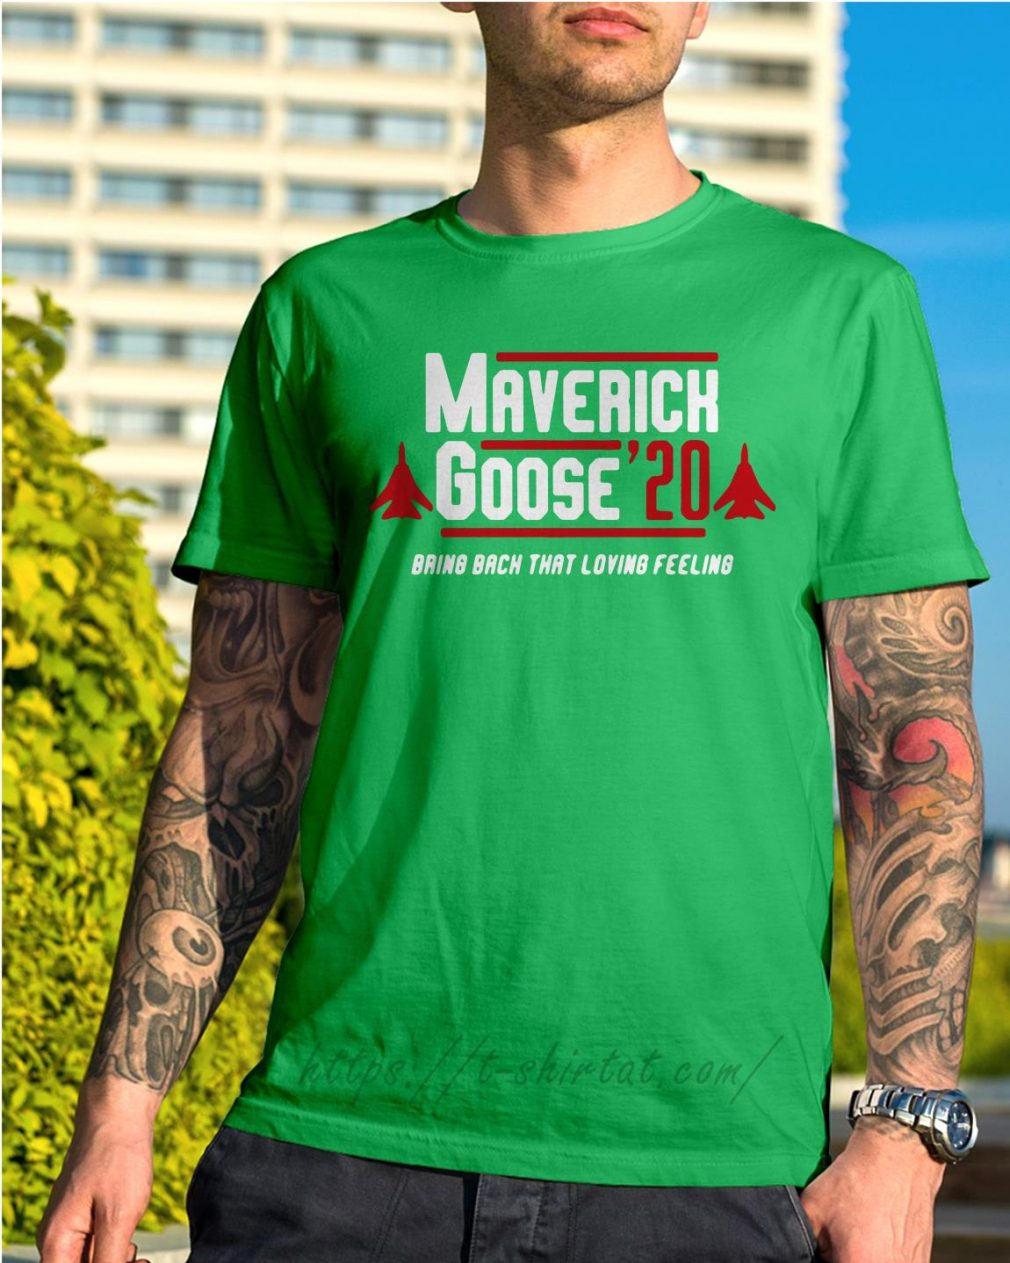 Maverick Goose' 20 bring back that loving feeling Shirt green